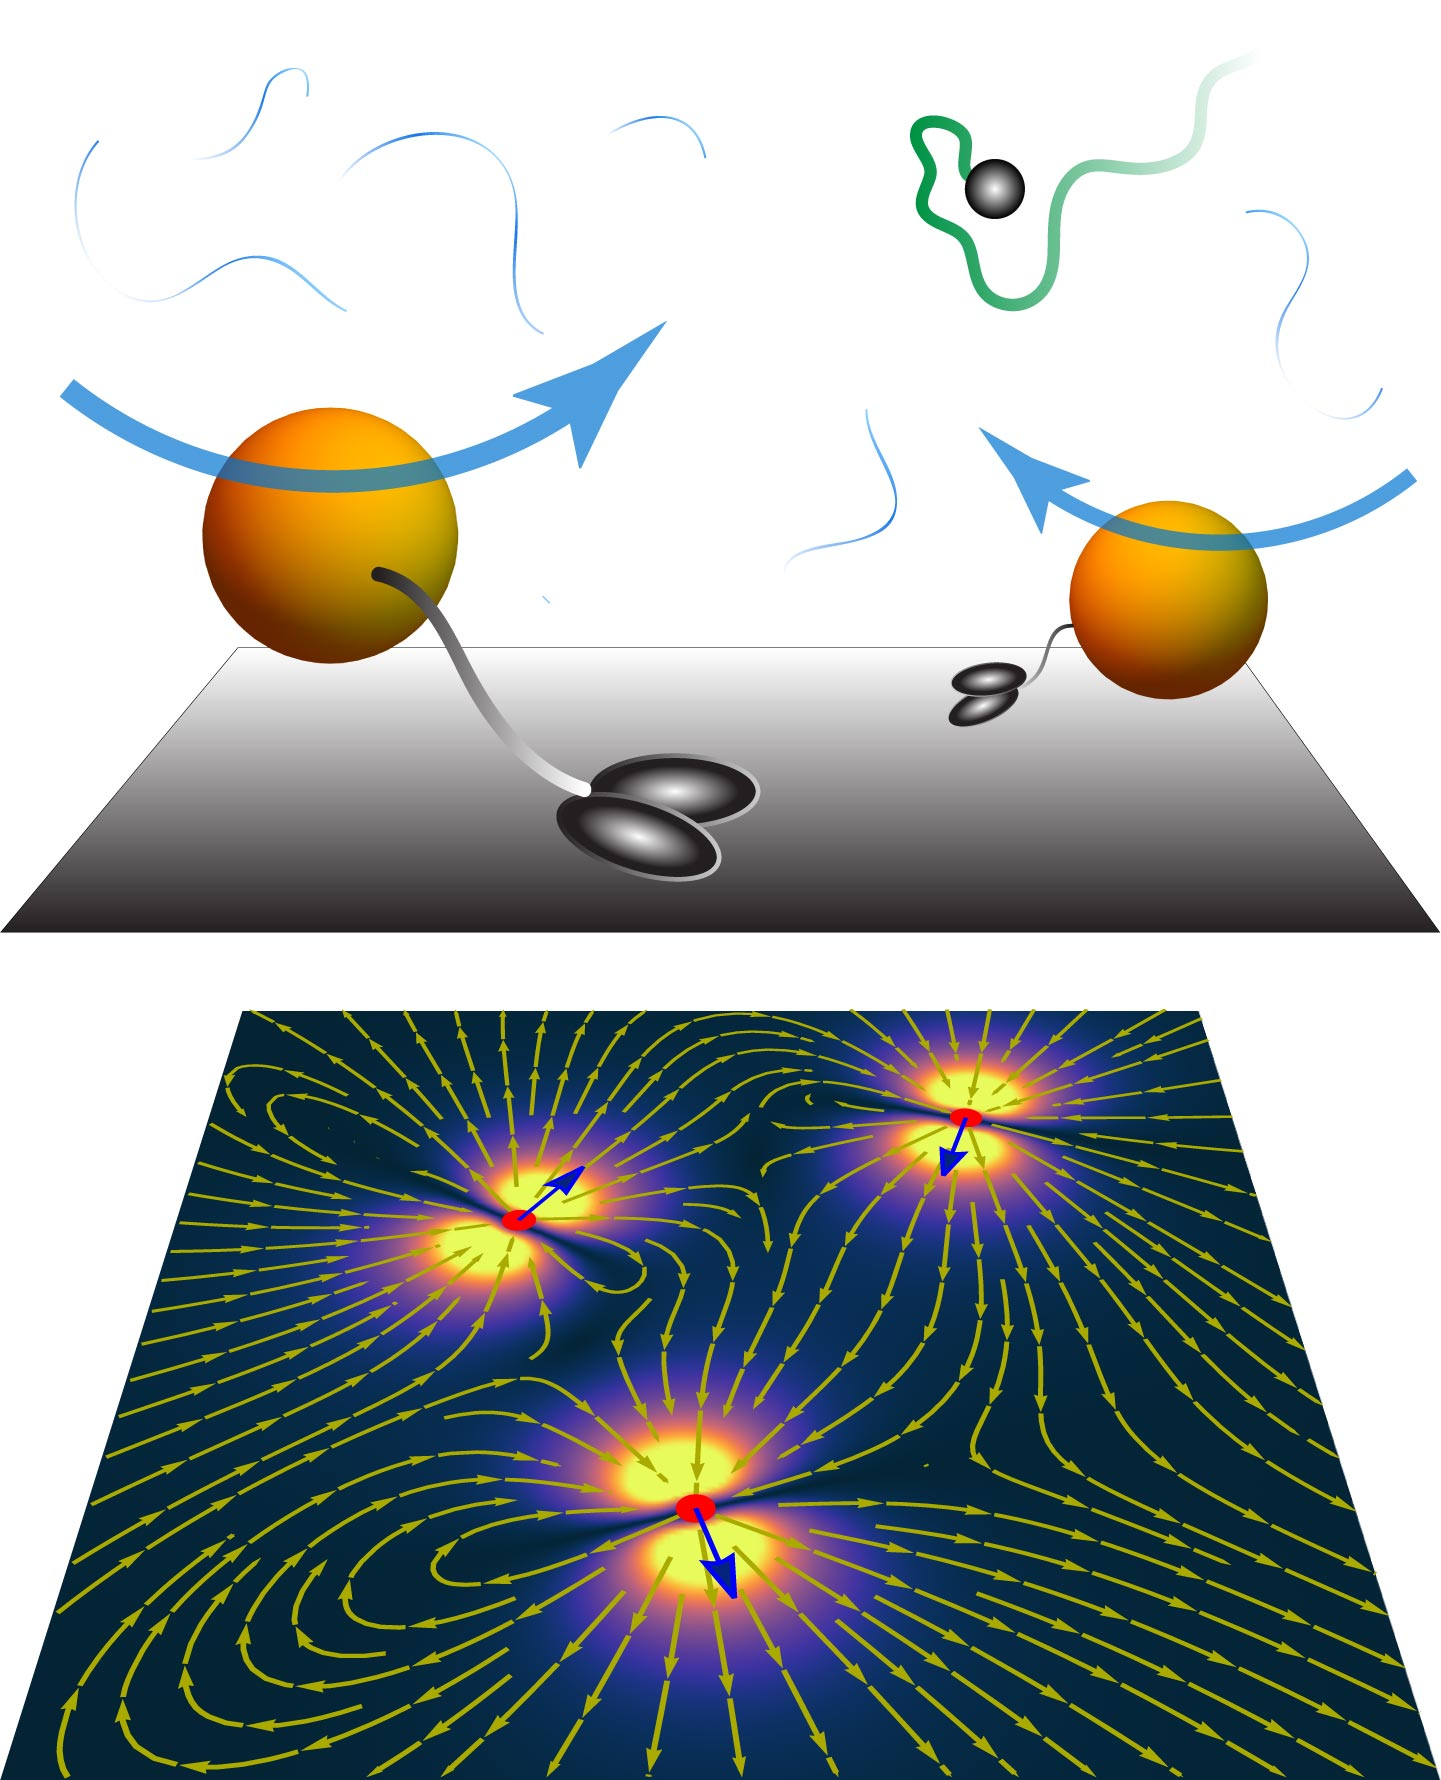 """Diffusion in Living Organisms: How Cells Transport Molecules With """"Active Carpets"""""""